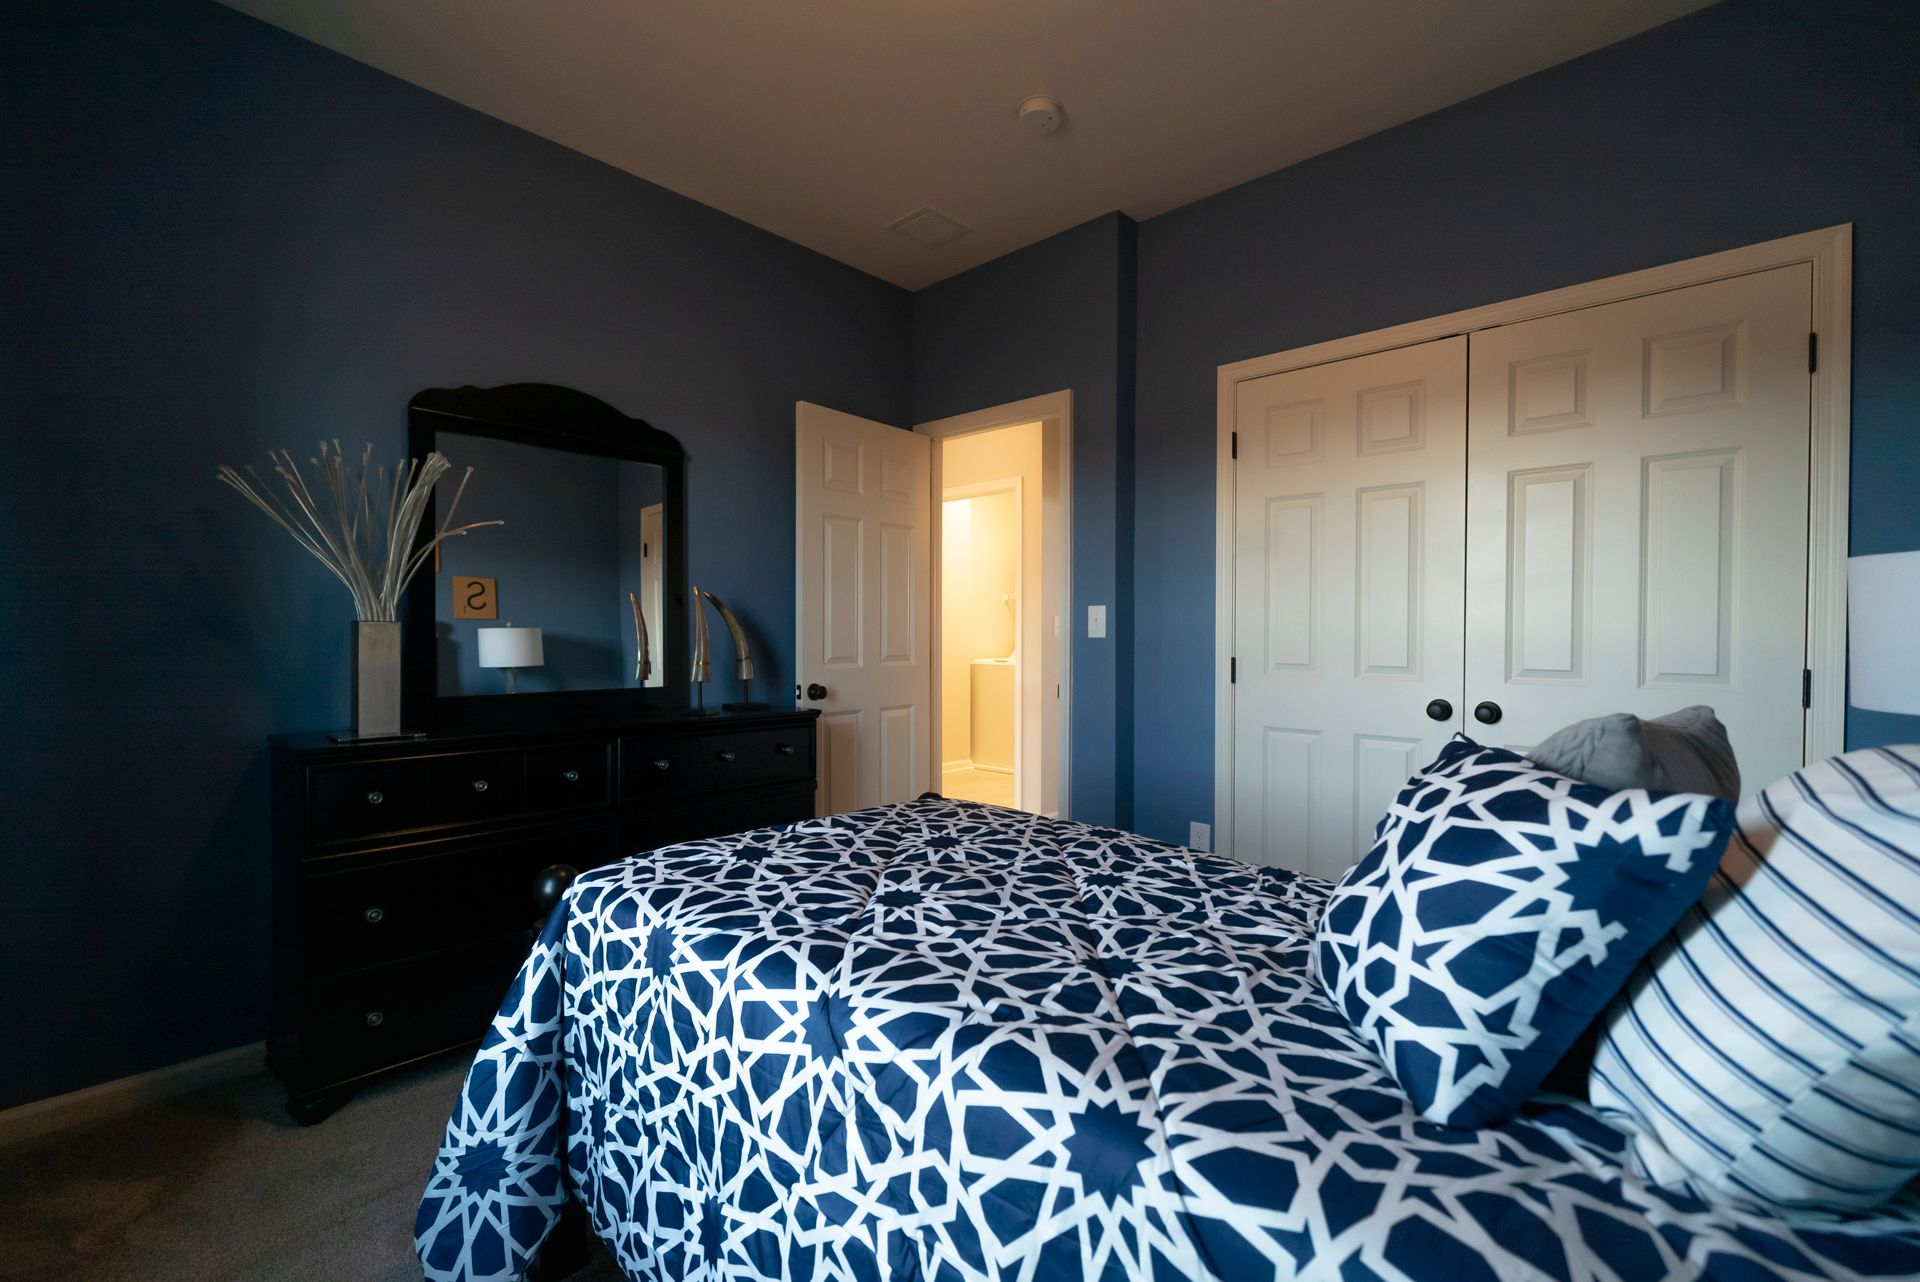 Bedroom featured in the Breckenridge Farmhouse By Tuskes Homes in Scranton-Wilkes-Barre, PA